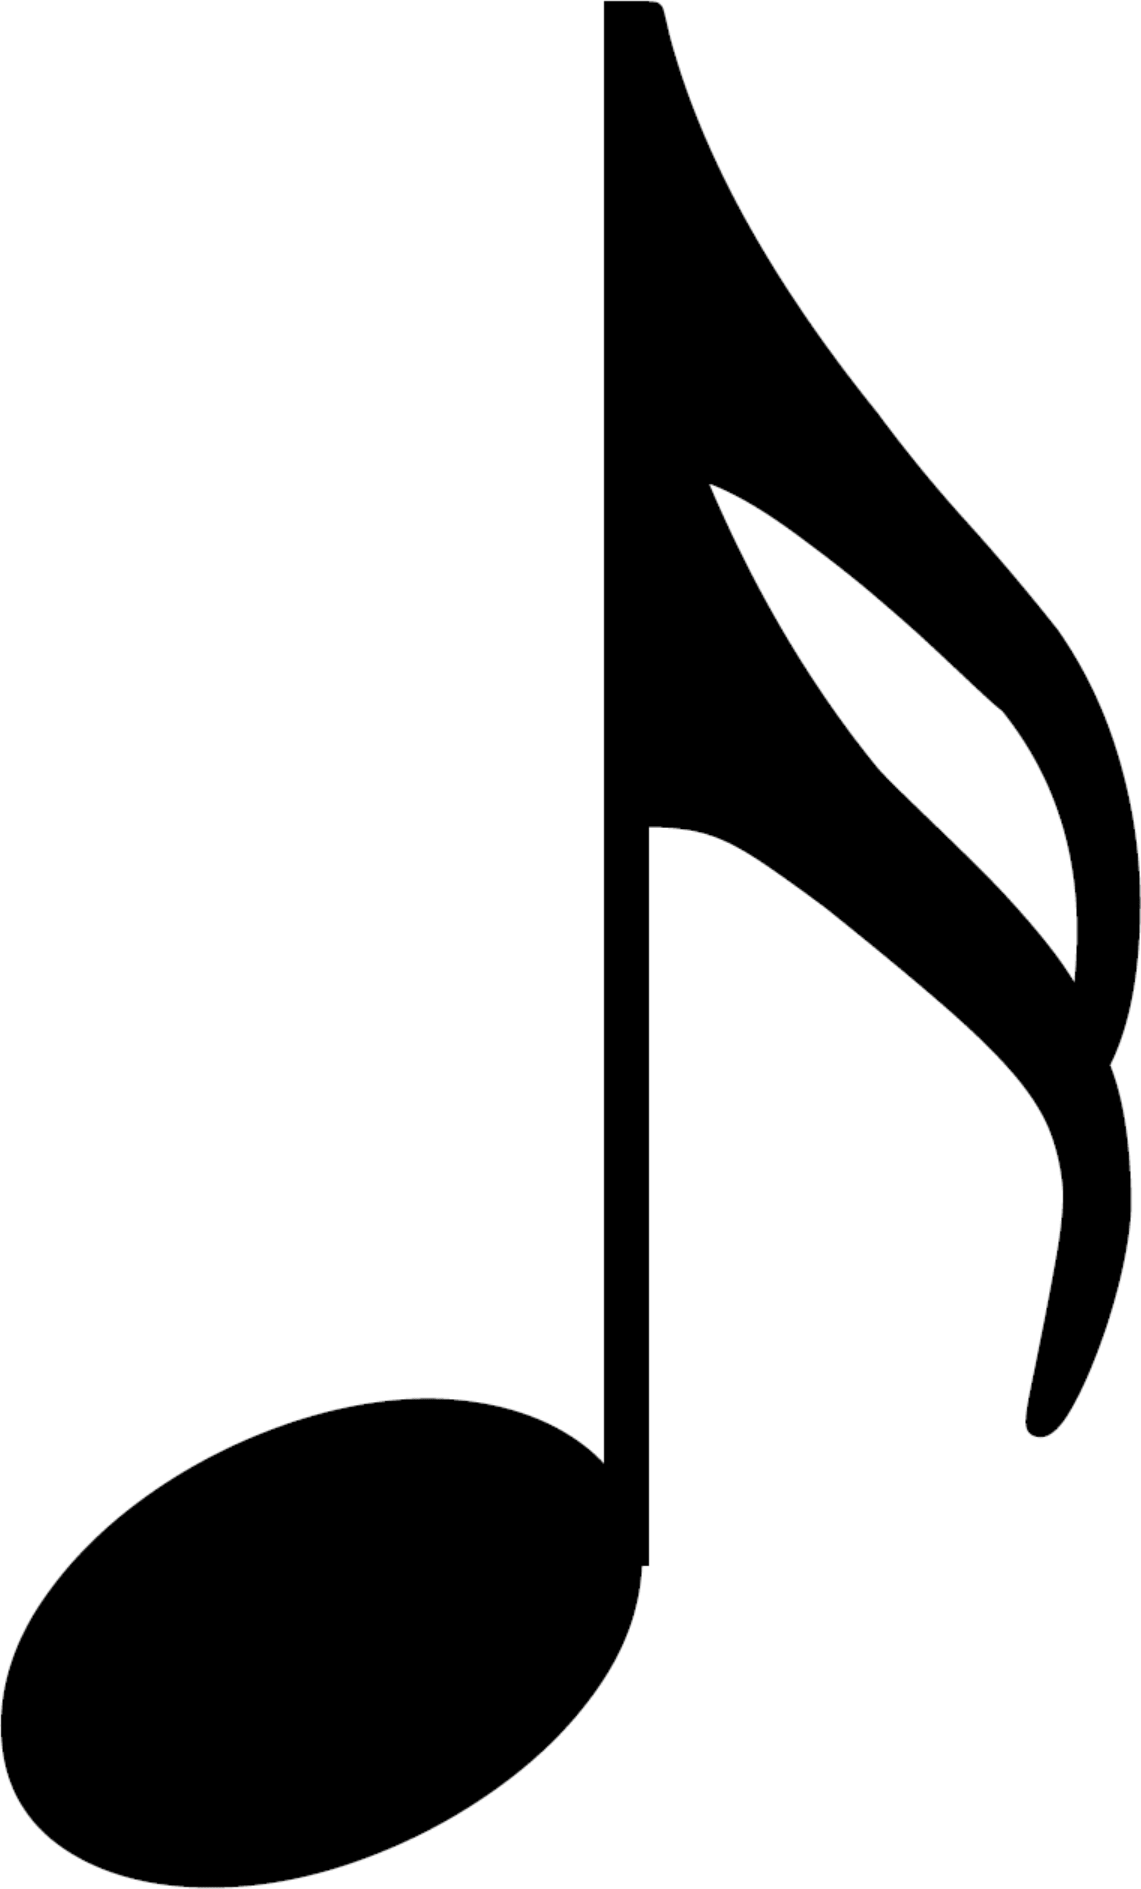 Note Values Musical Symbols Free Hd Images